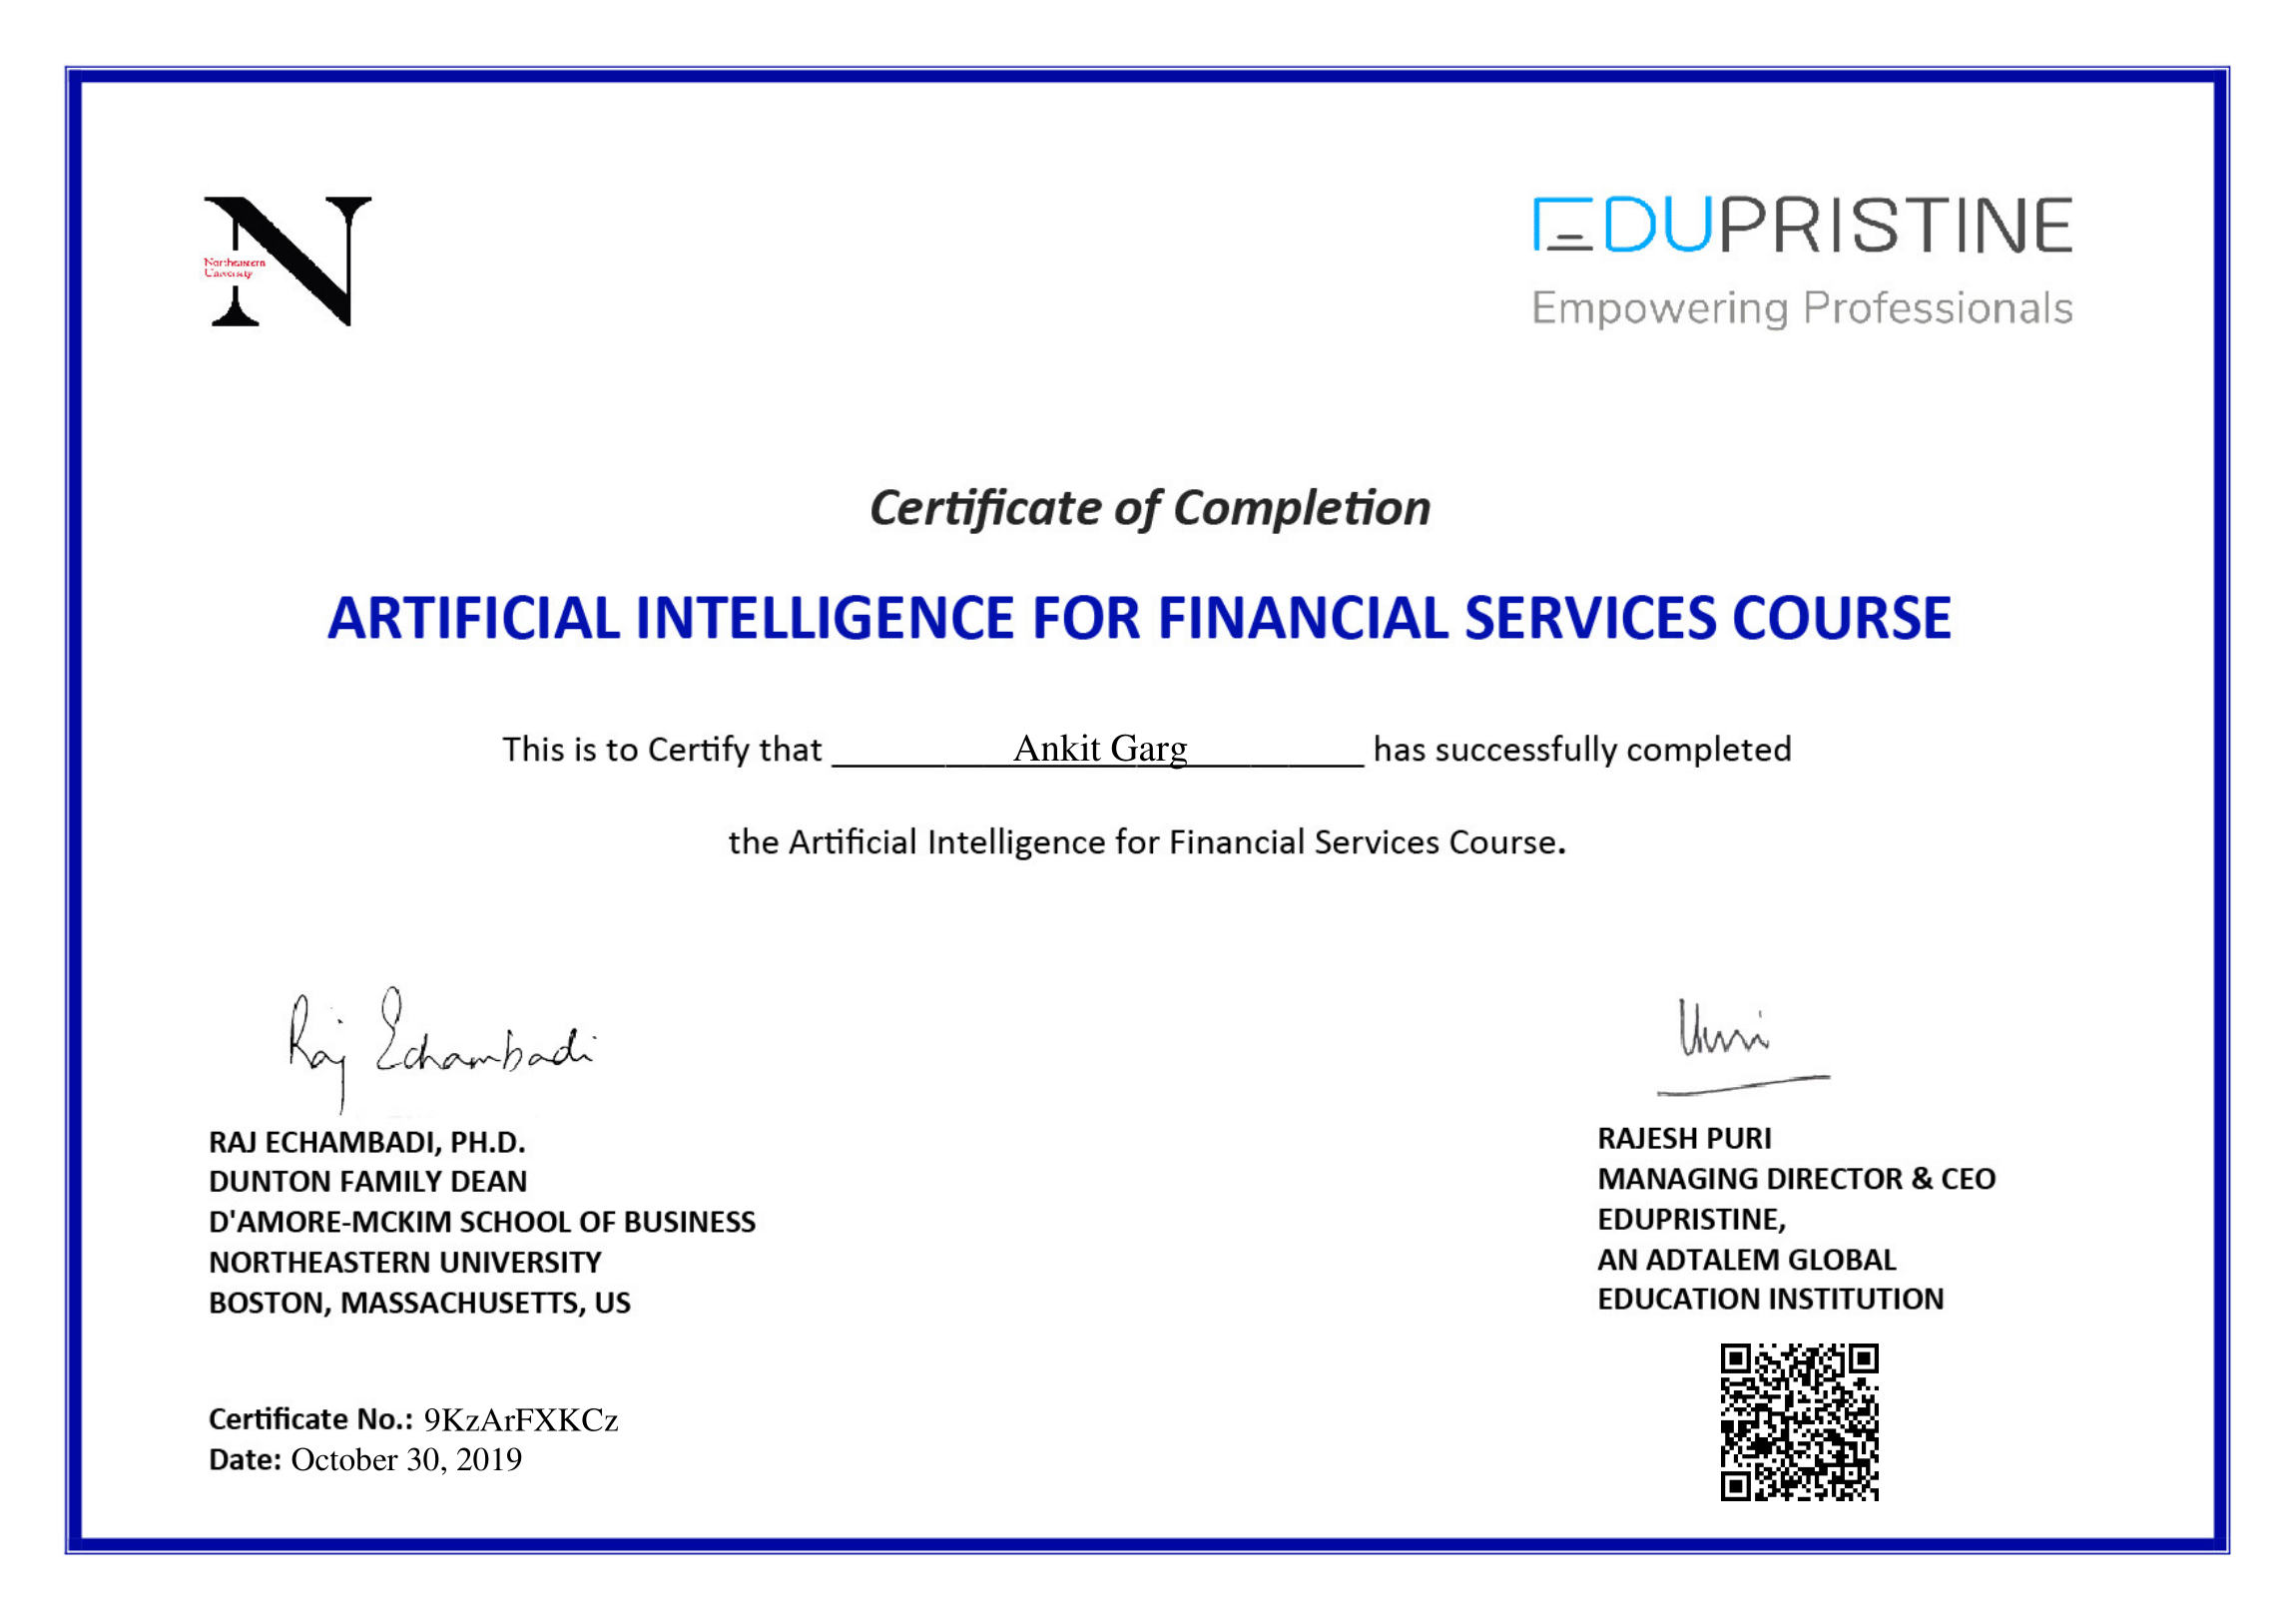 Artificial Intelligence for Financial Services Certificate